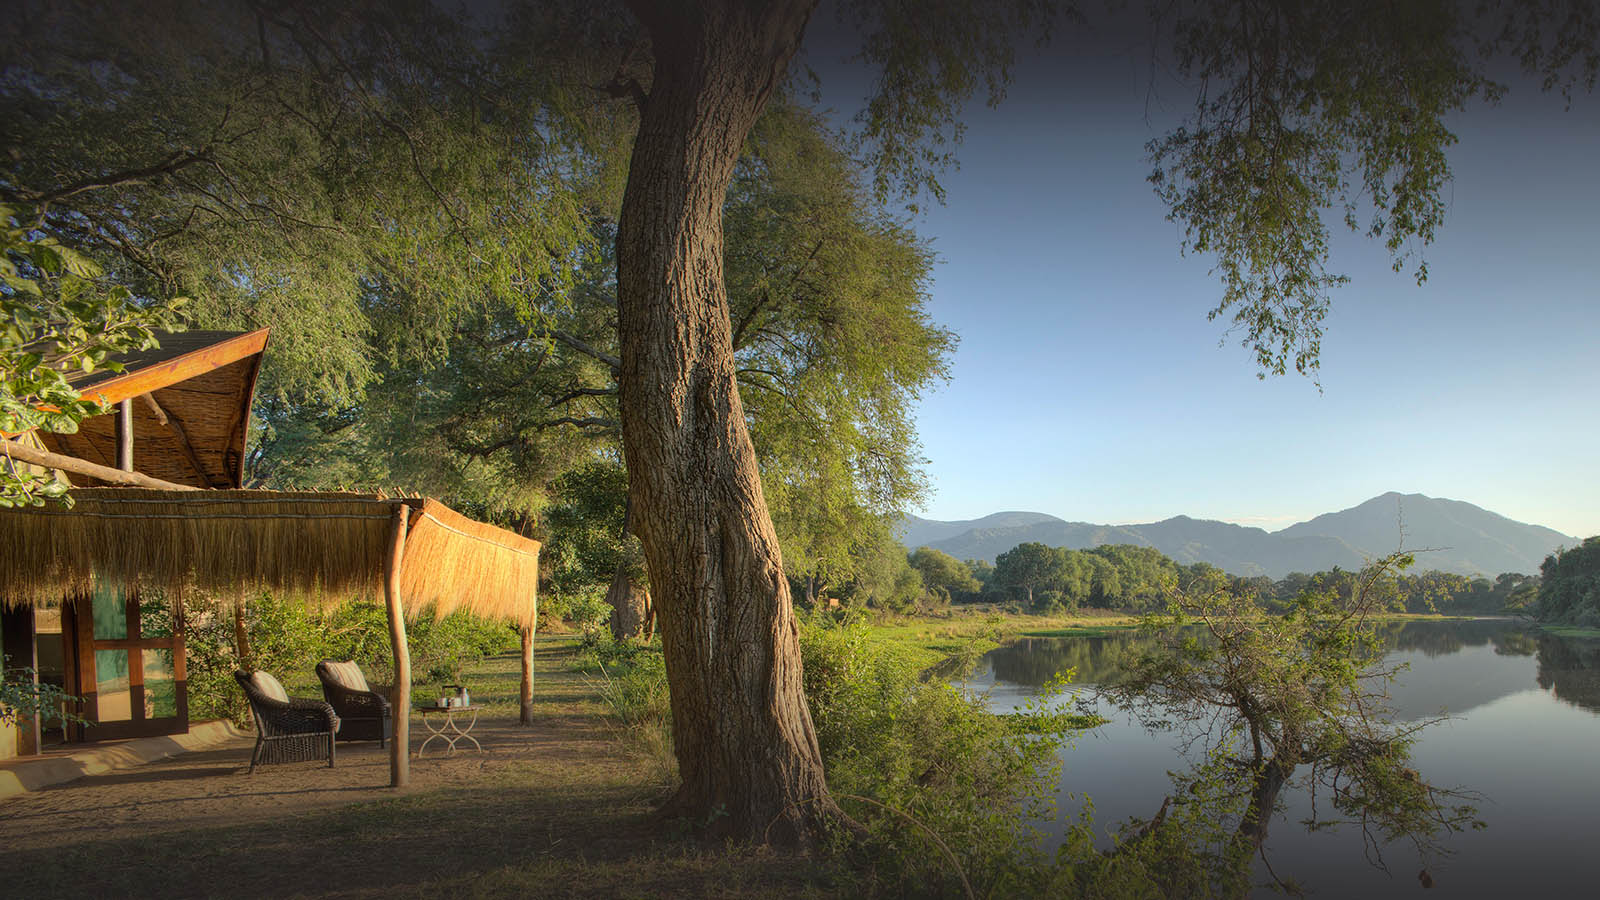 chongwe camp zambia-in-style-zambia-lodges-lower-zambezi-national-park-tents-wildlife-views